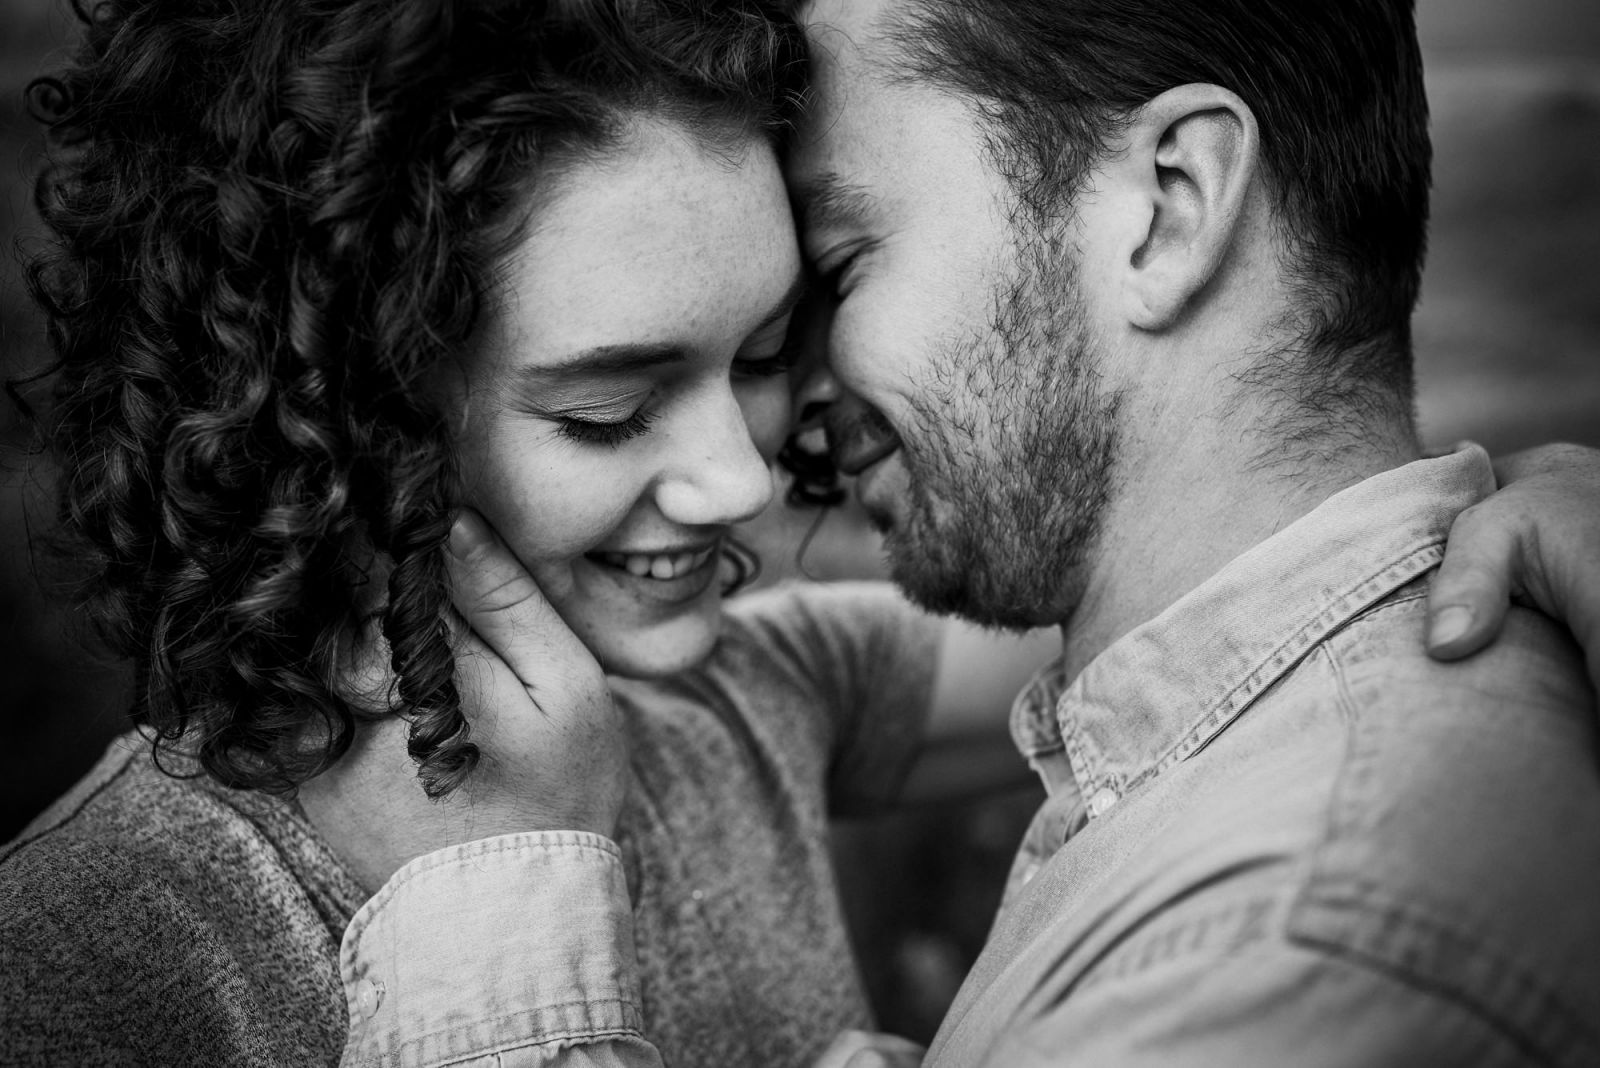 professional engagement photographer captures close up candid photos